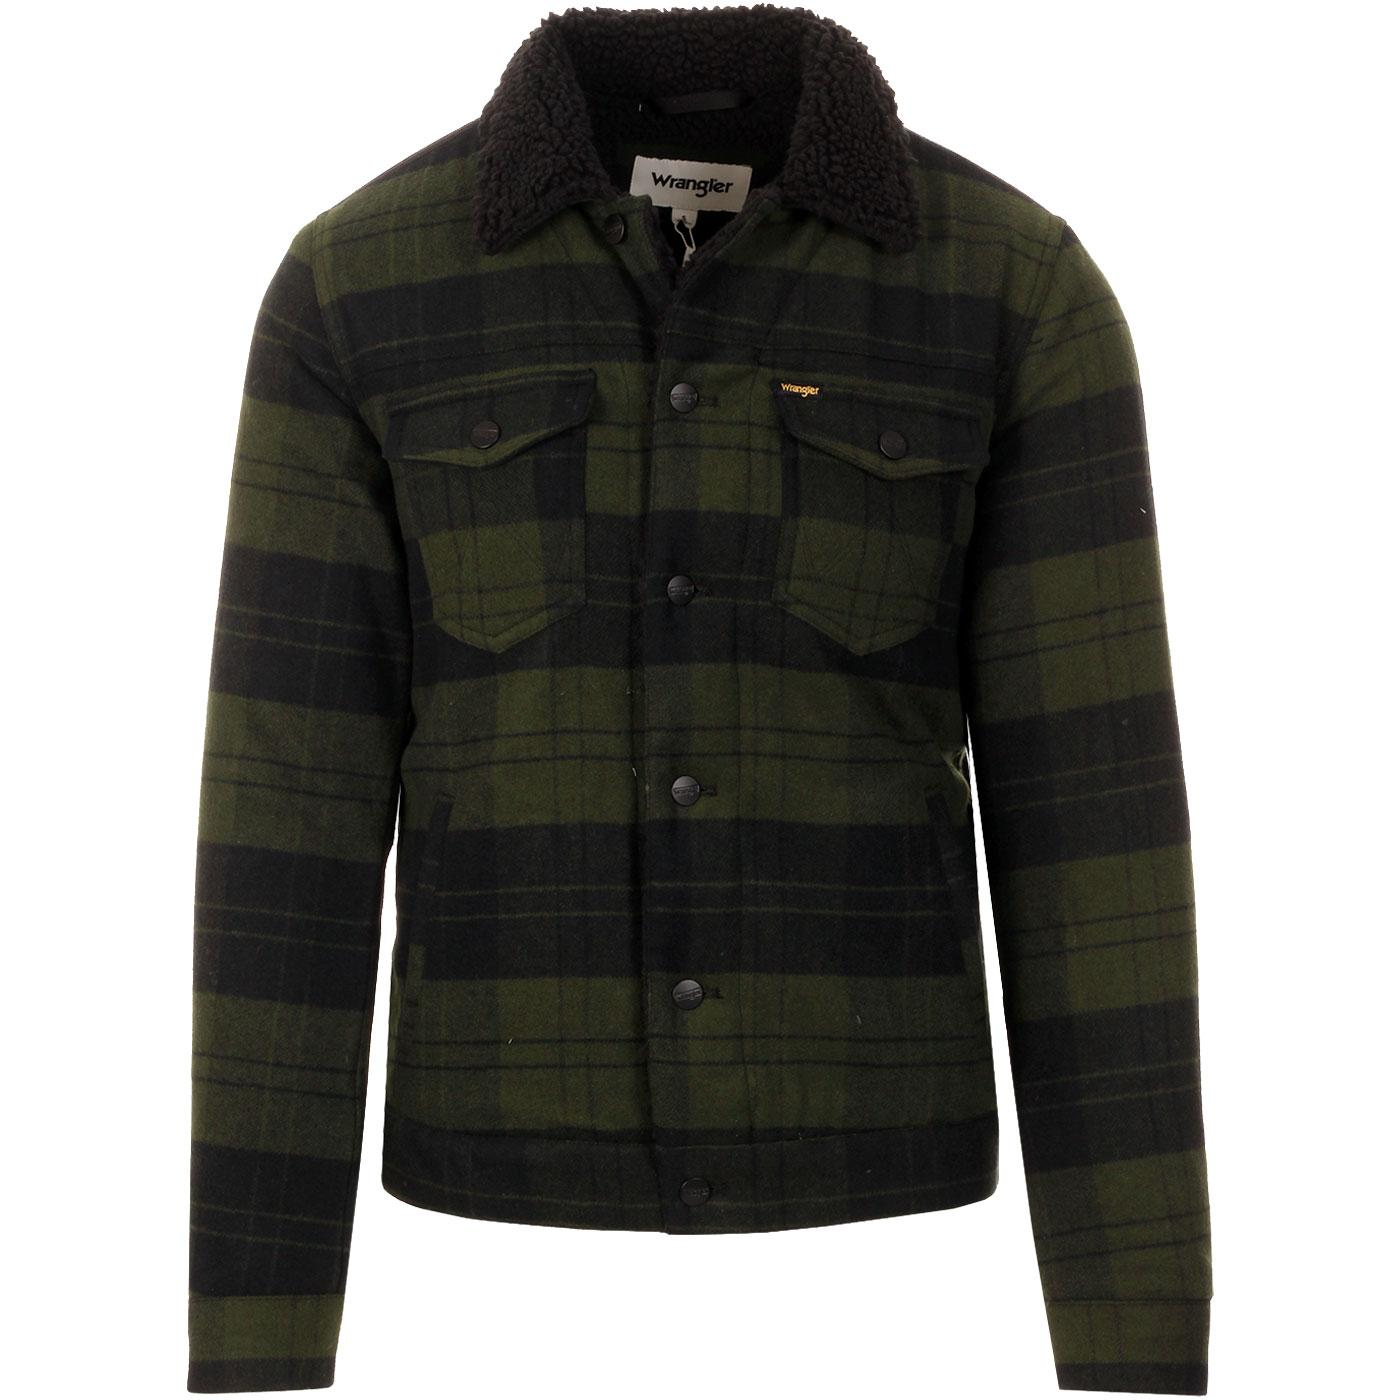 The Trucker WRANGLER Men's Check Sherpa Jacket RG